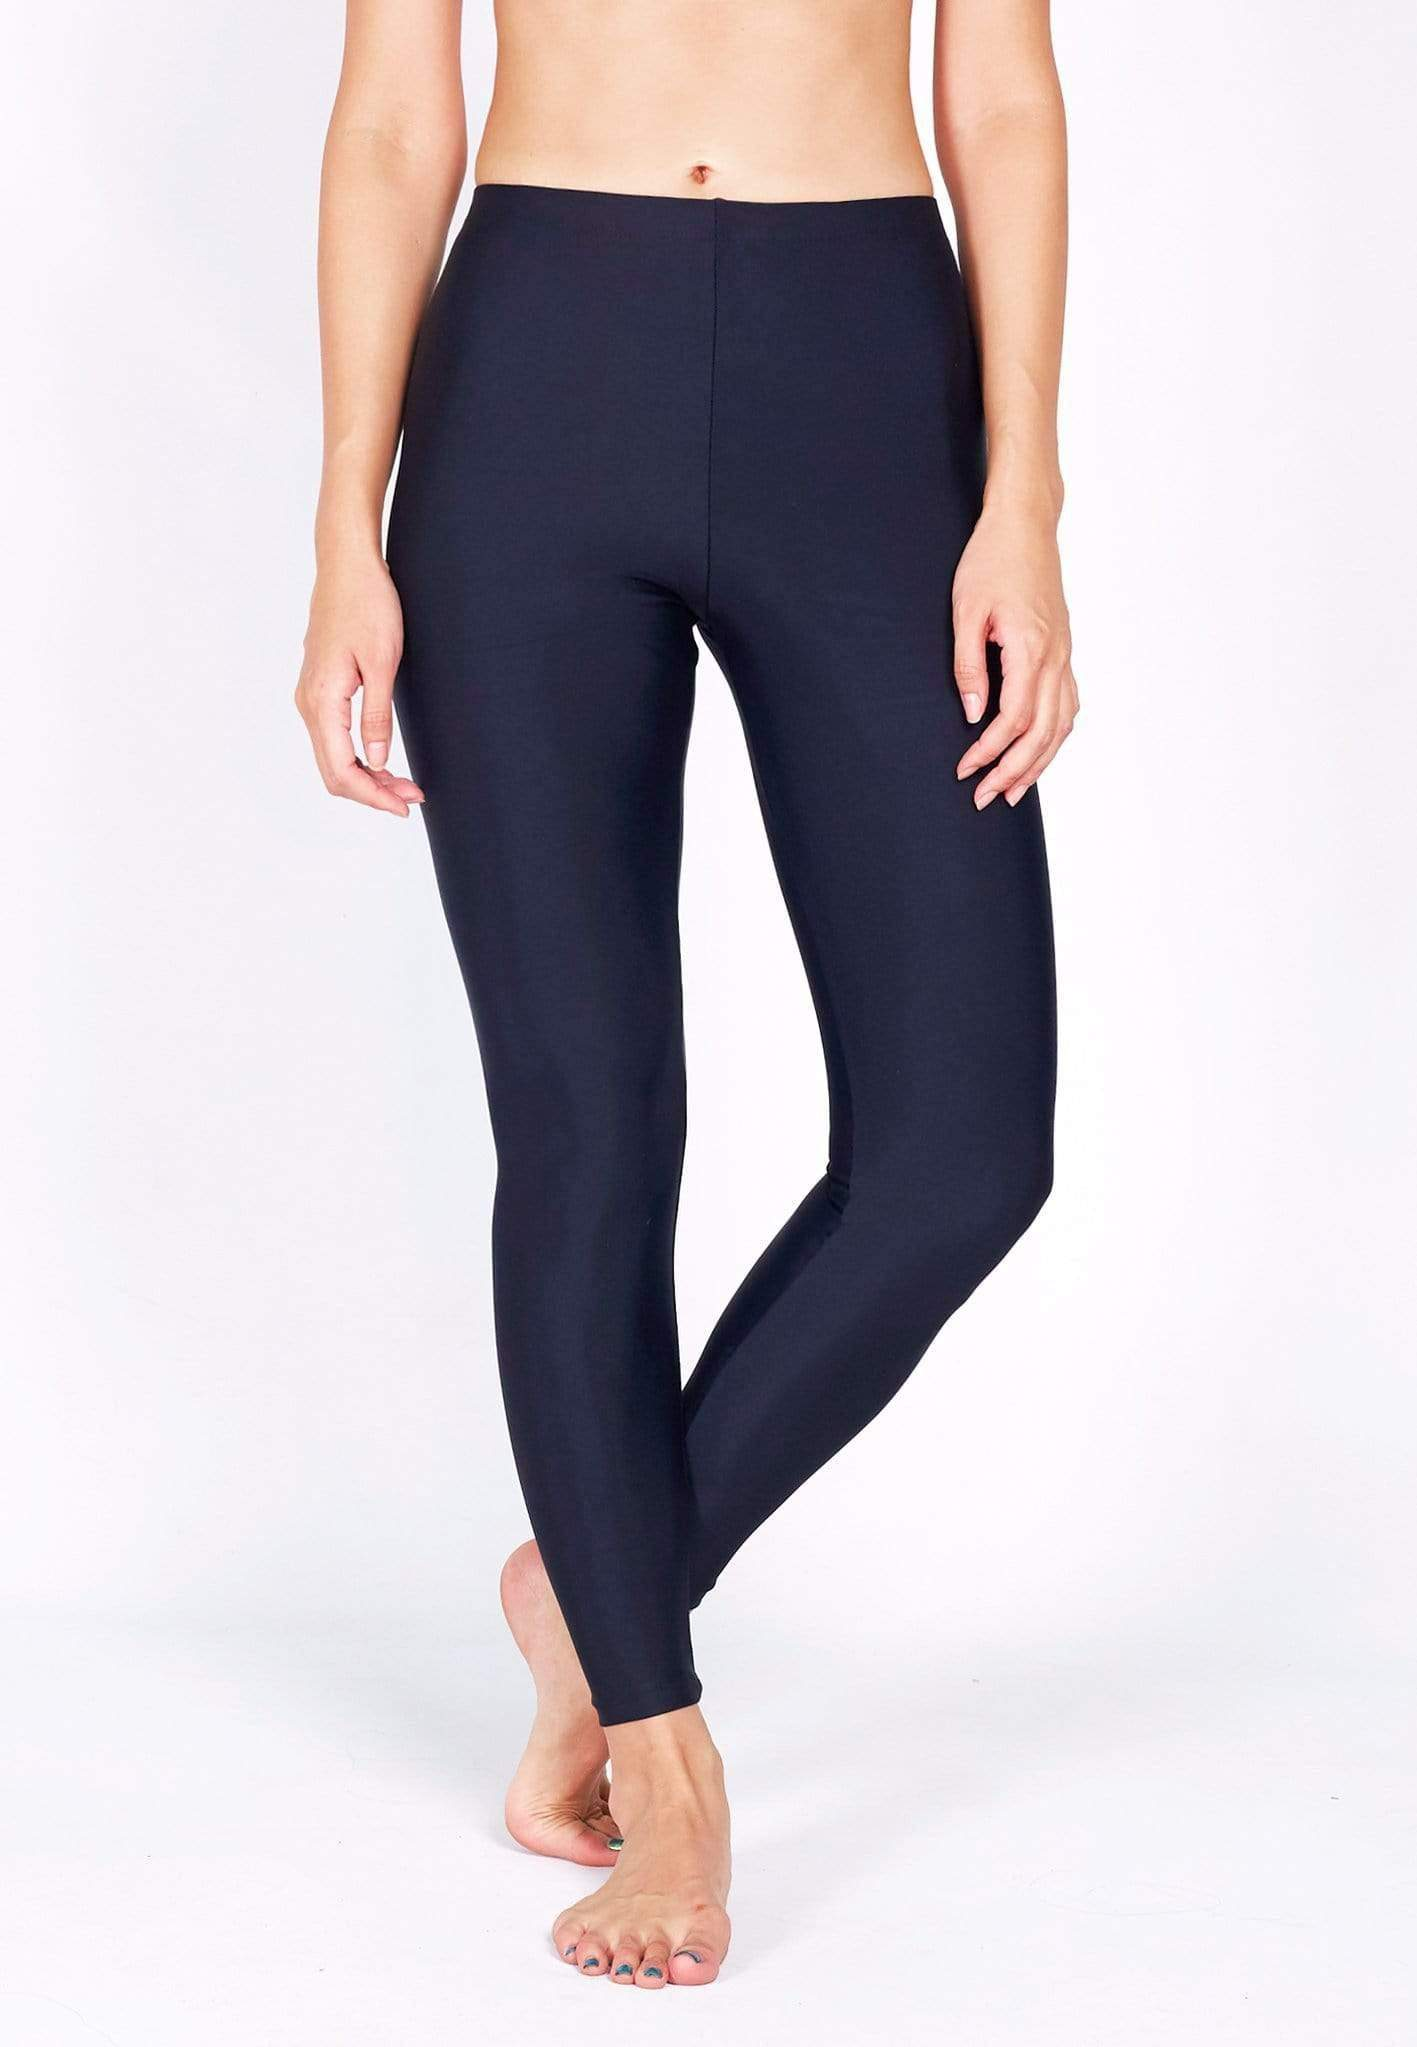 UPF50+ Basic Swim Tights (Navy) | S - 5XL